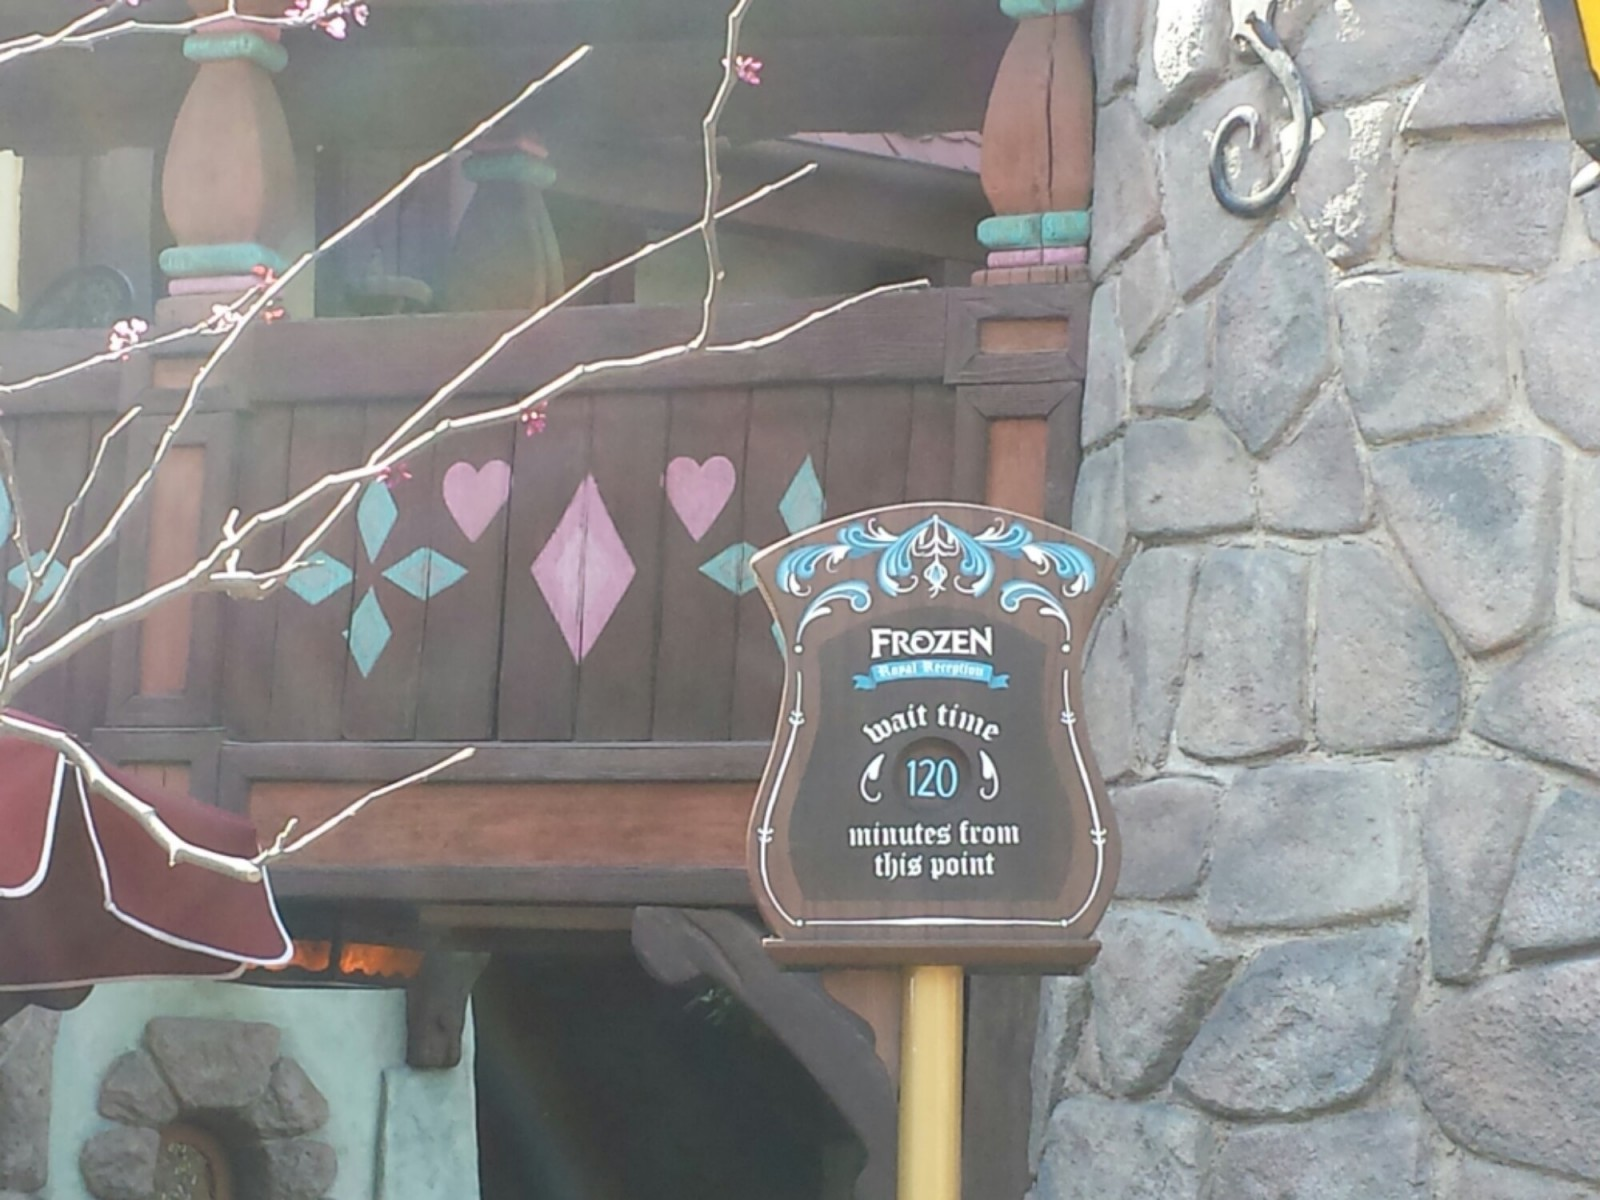 The Frozen Royal Reception has a posted wait of 120min